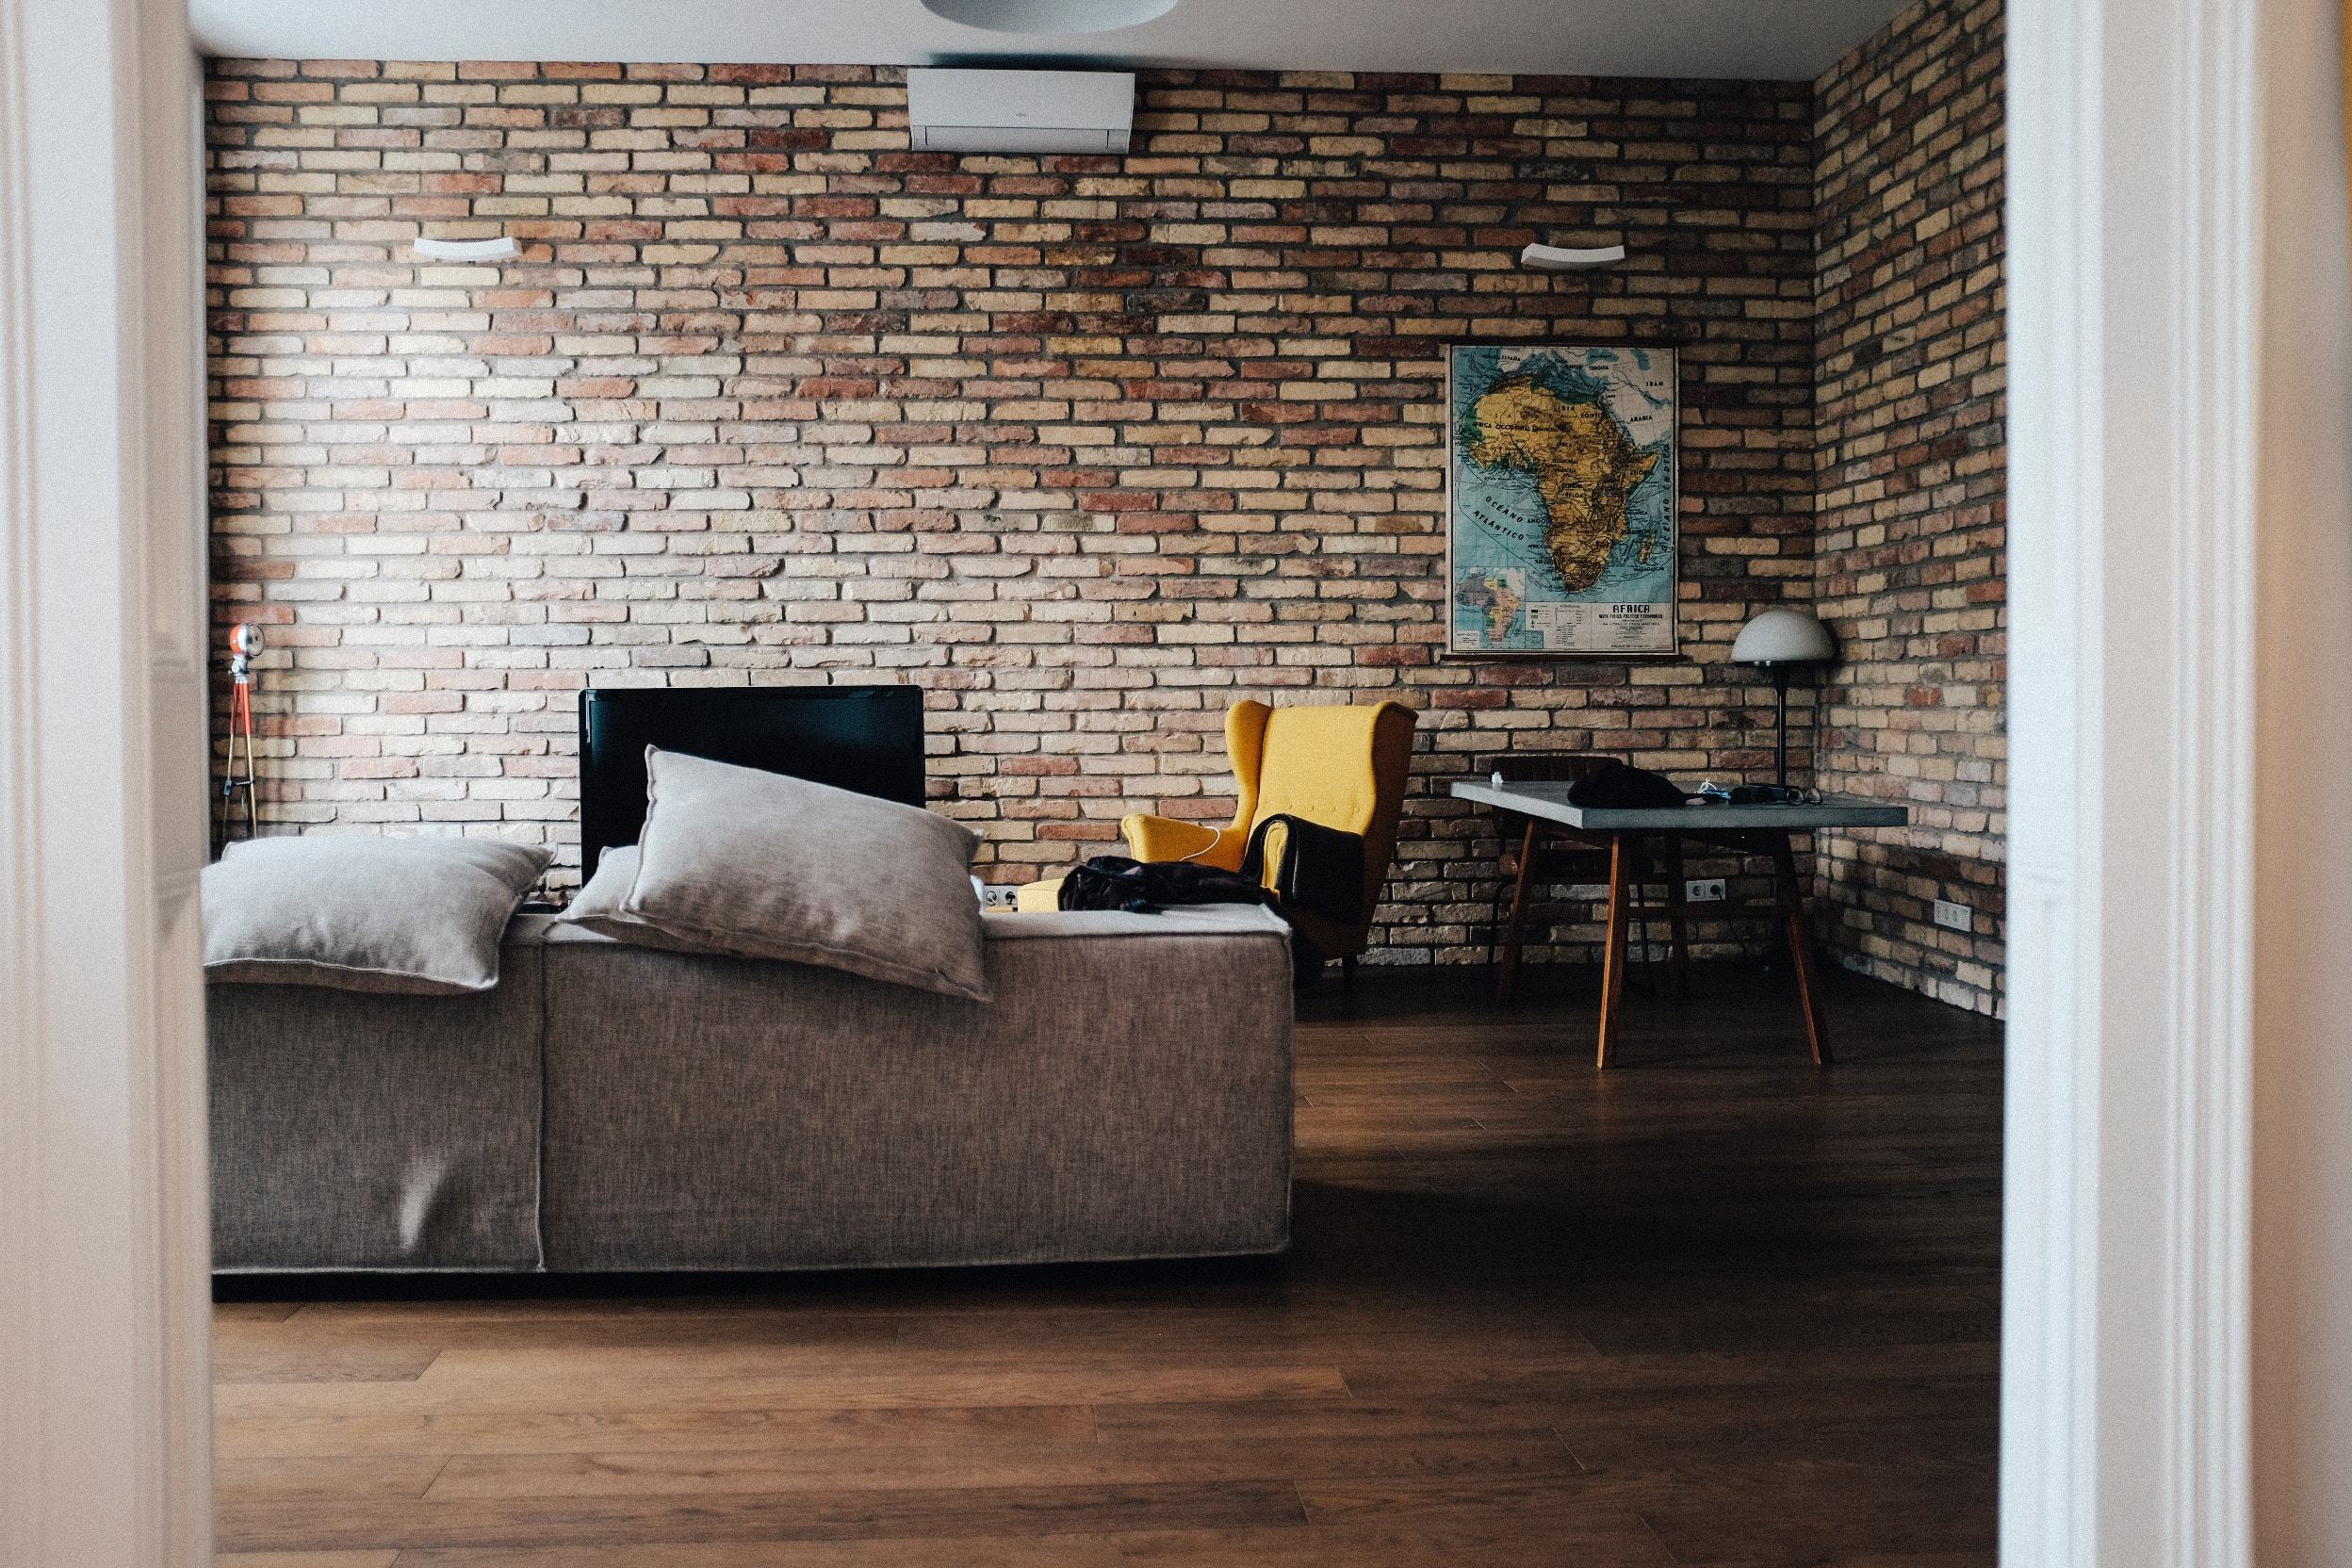 Say bye bye to your dream apartment.